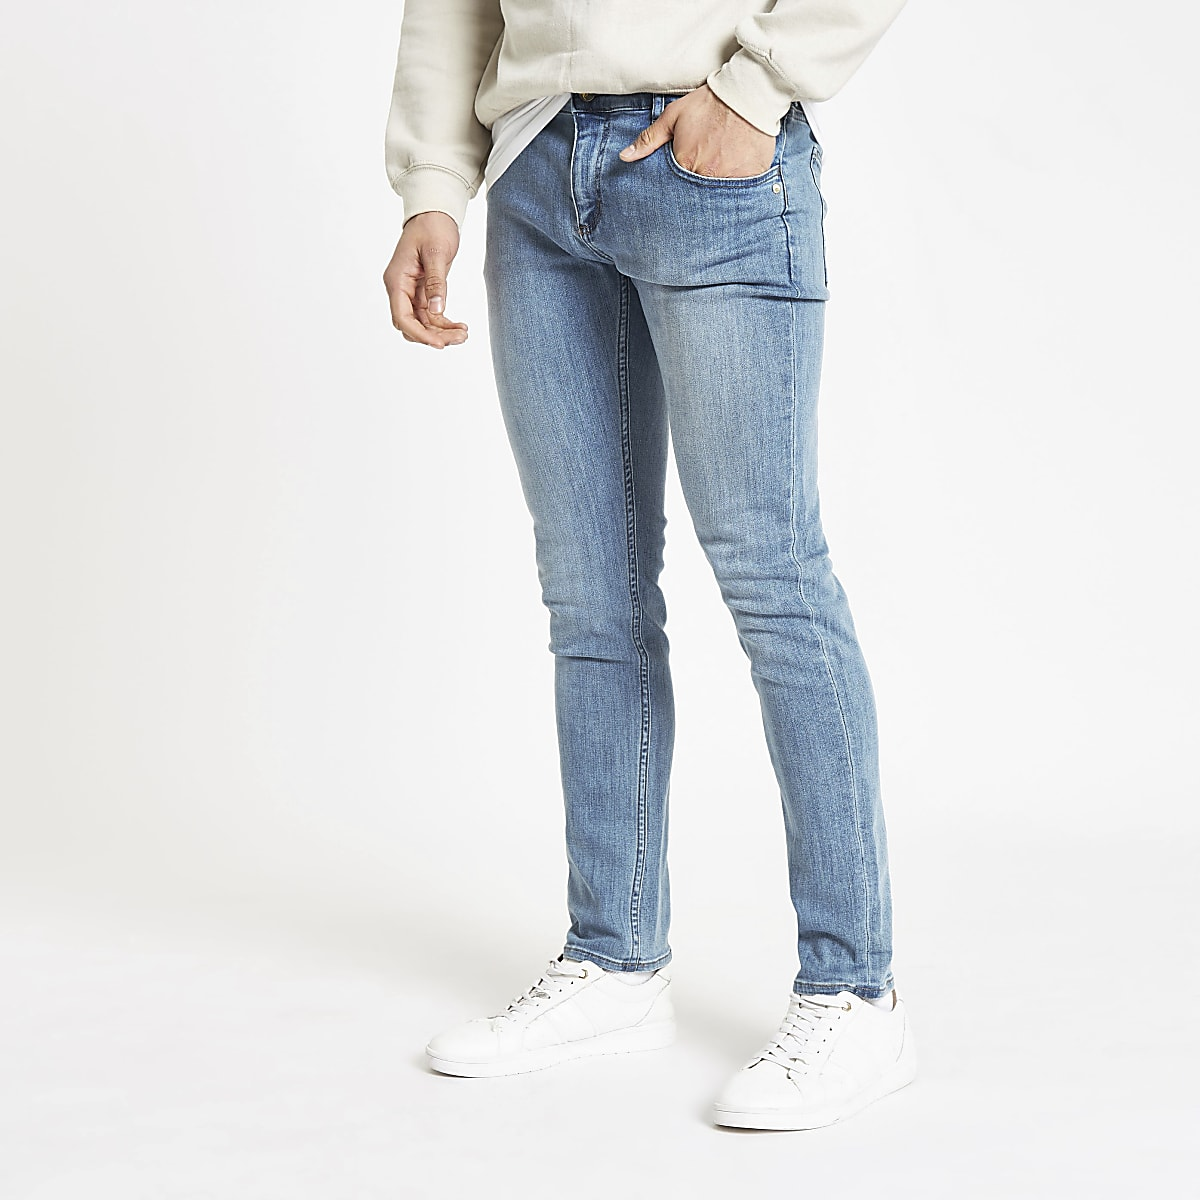 Monkee Genes light blue skinny jeans